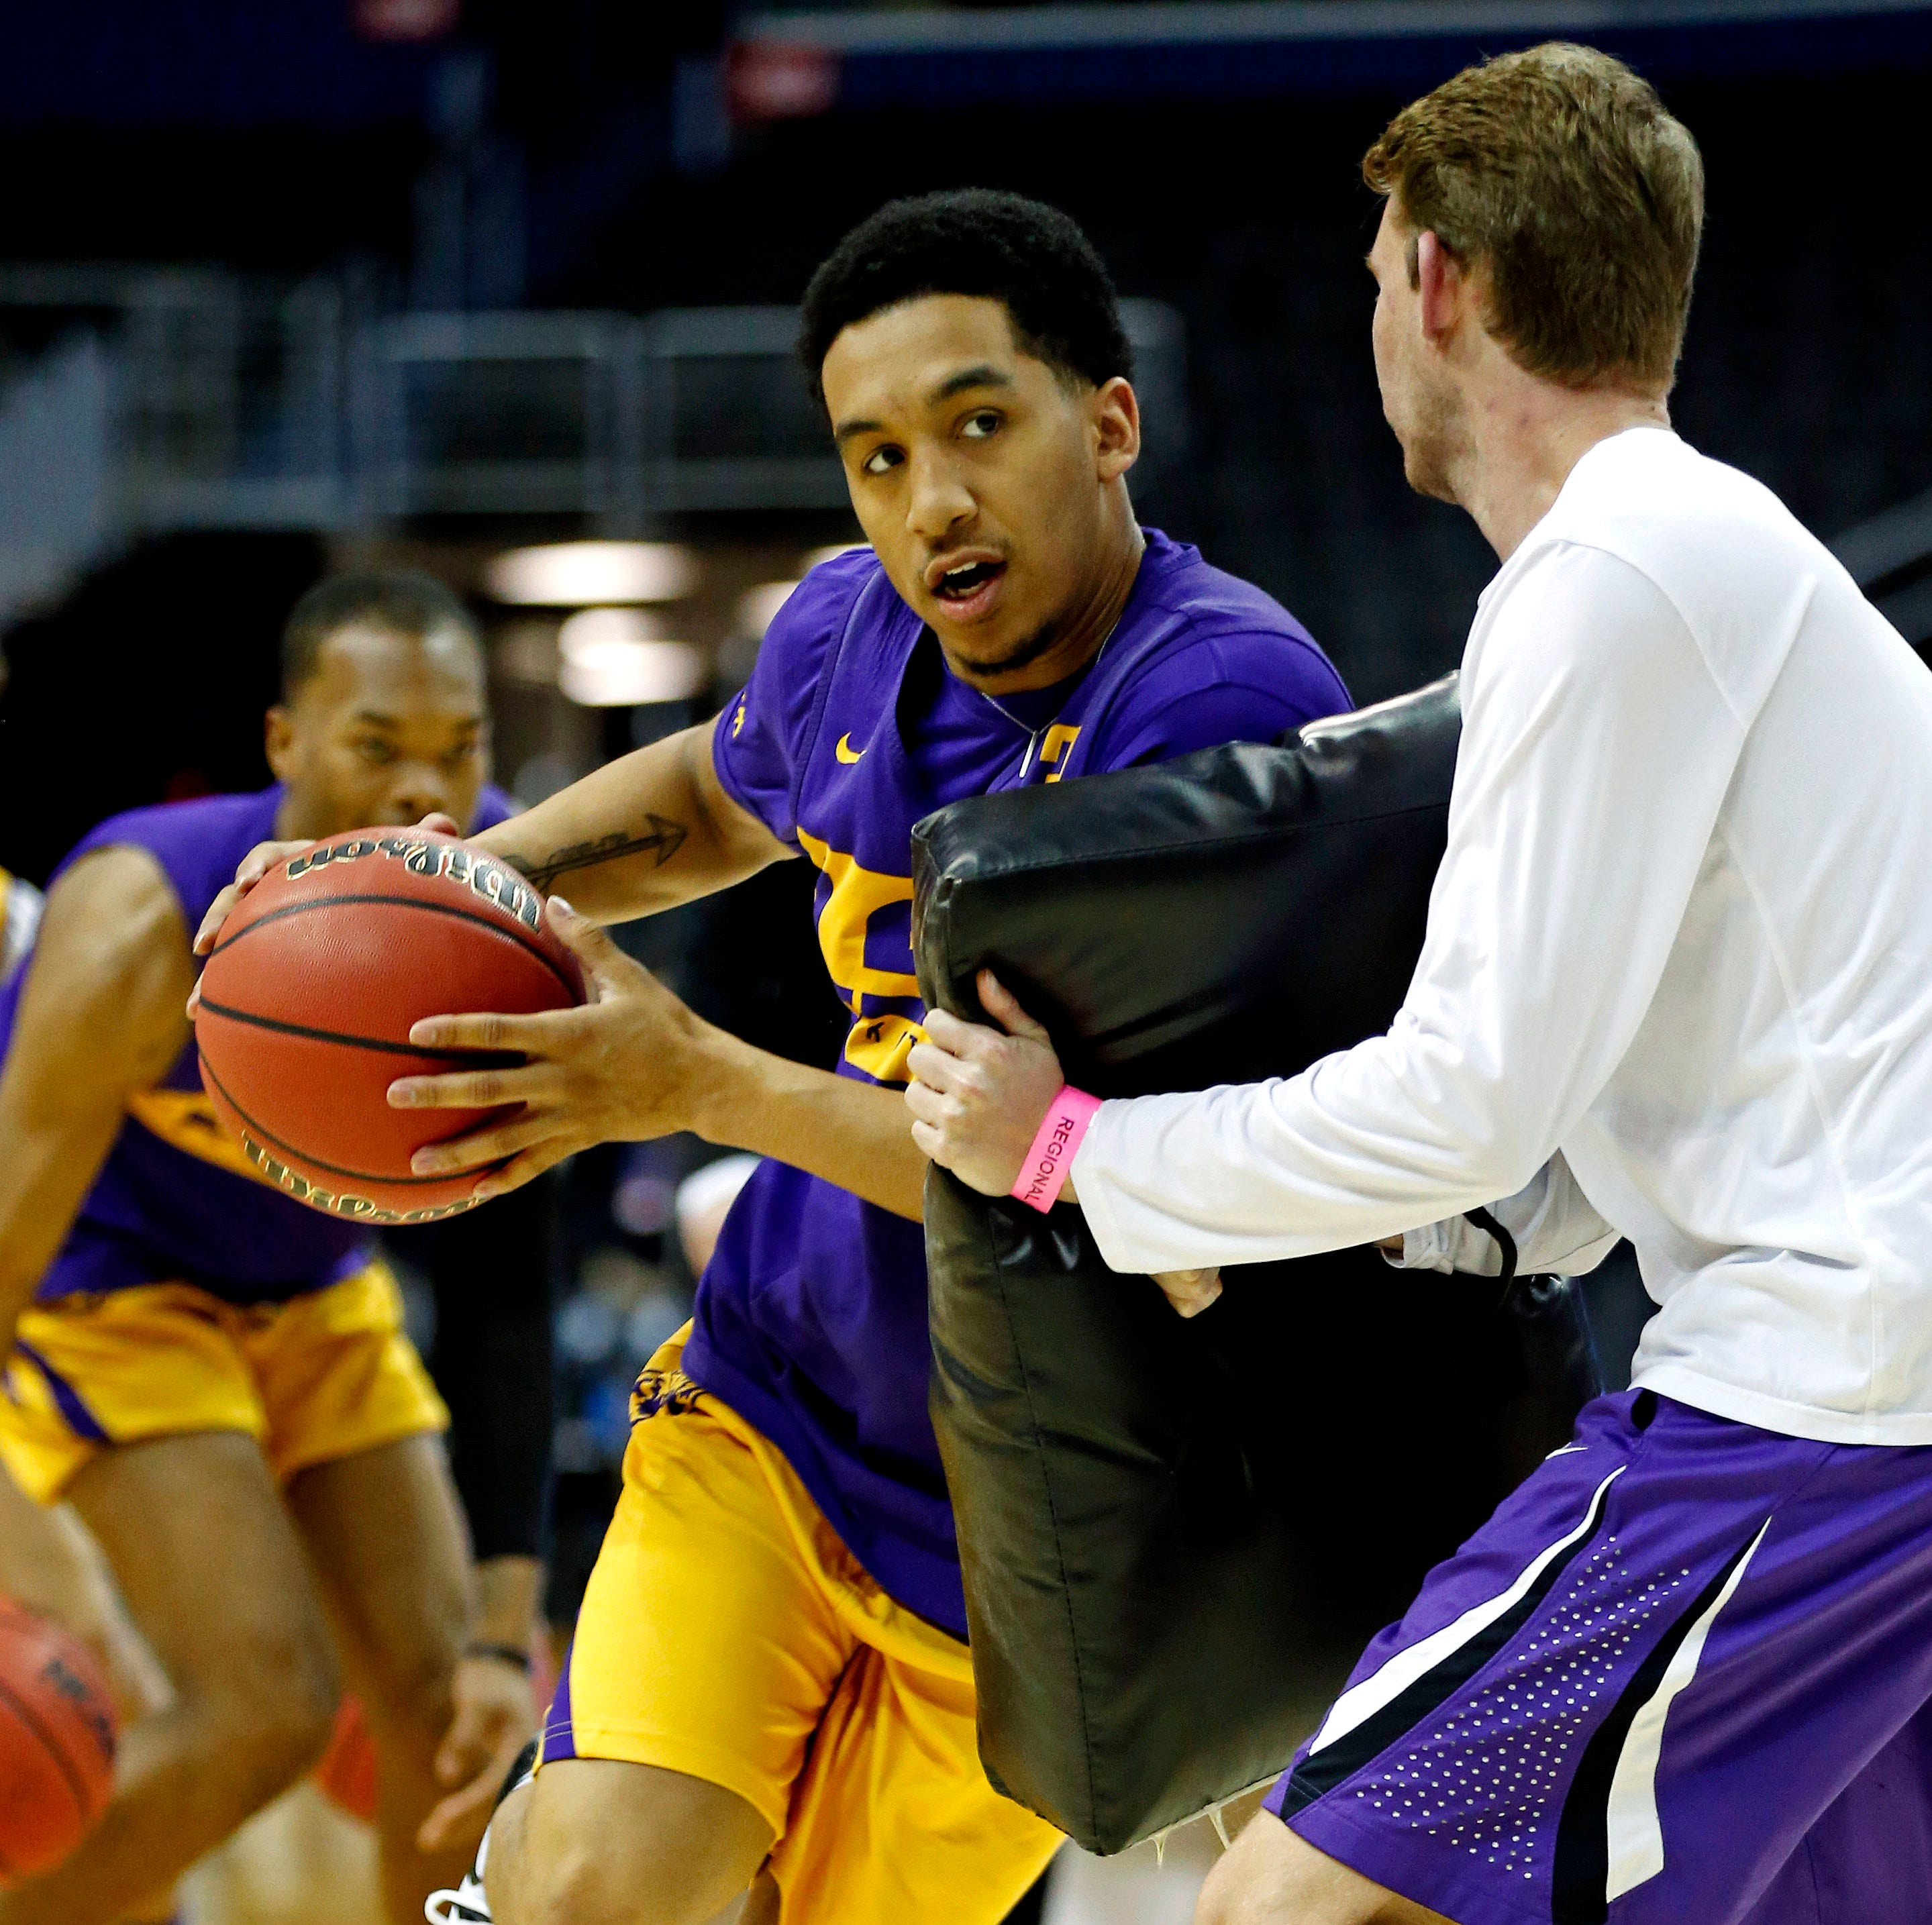 LSU struggles against the zone, but here's why Michigan State and Izzo won't use it